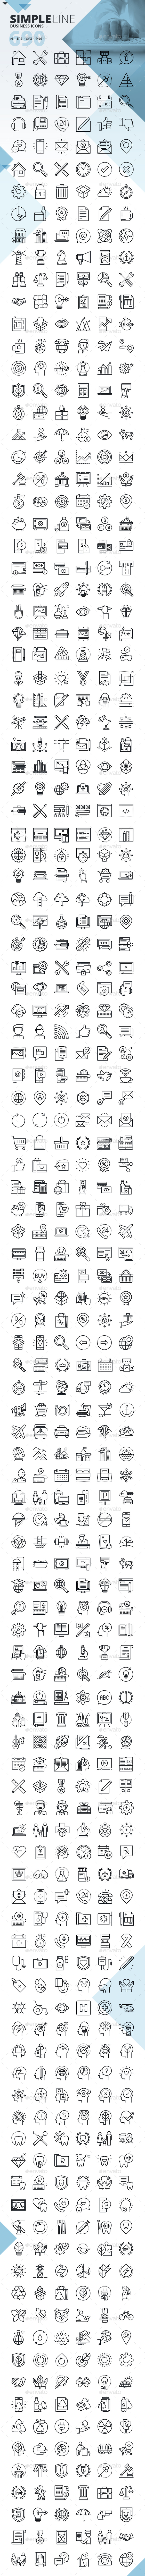 Mobile and Sign Icons from GraphicRiver